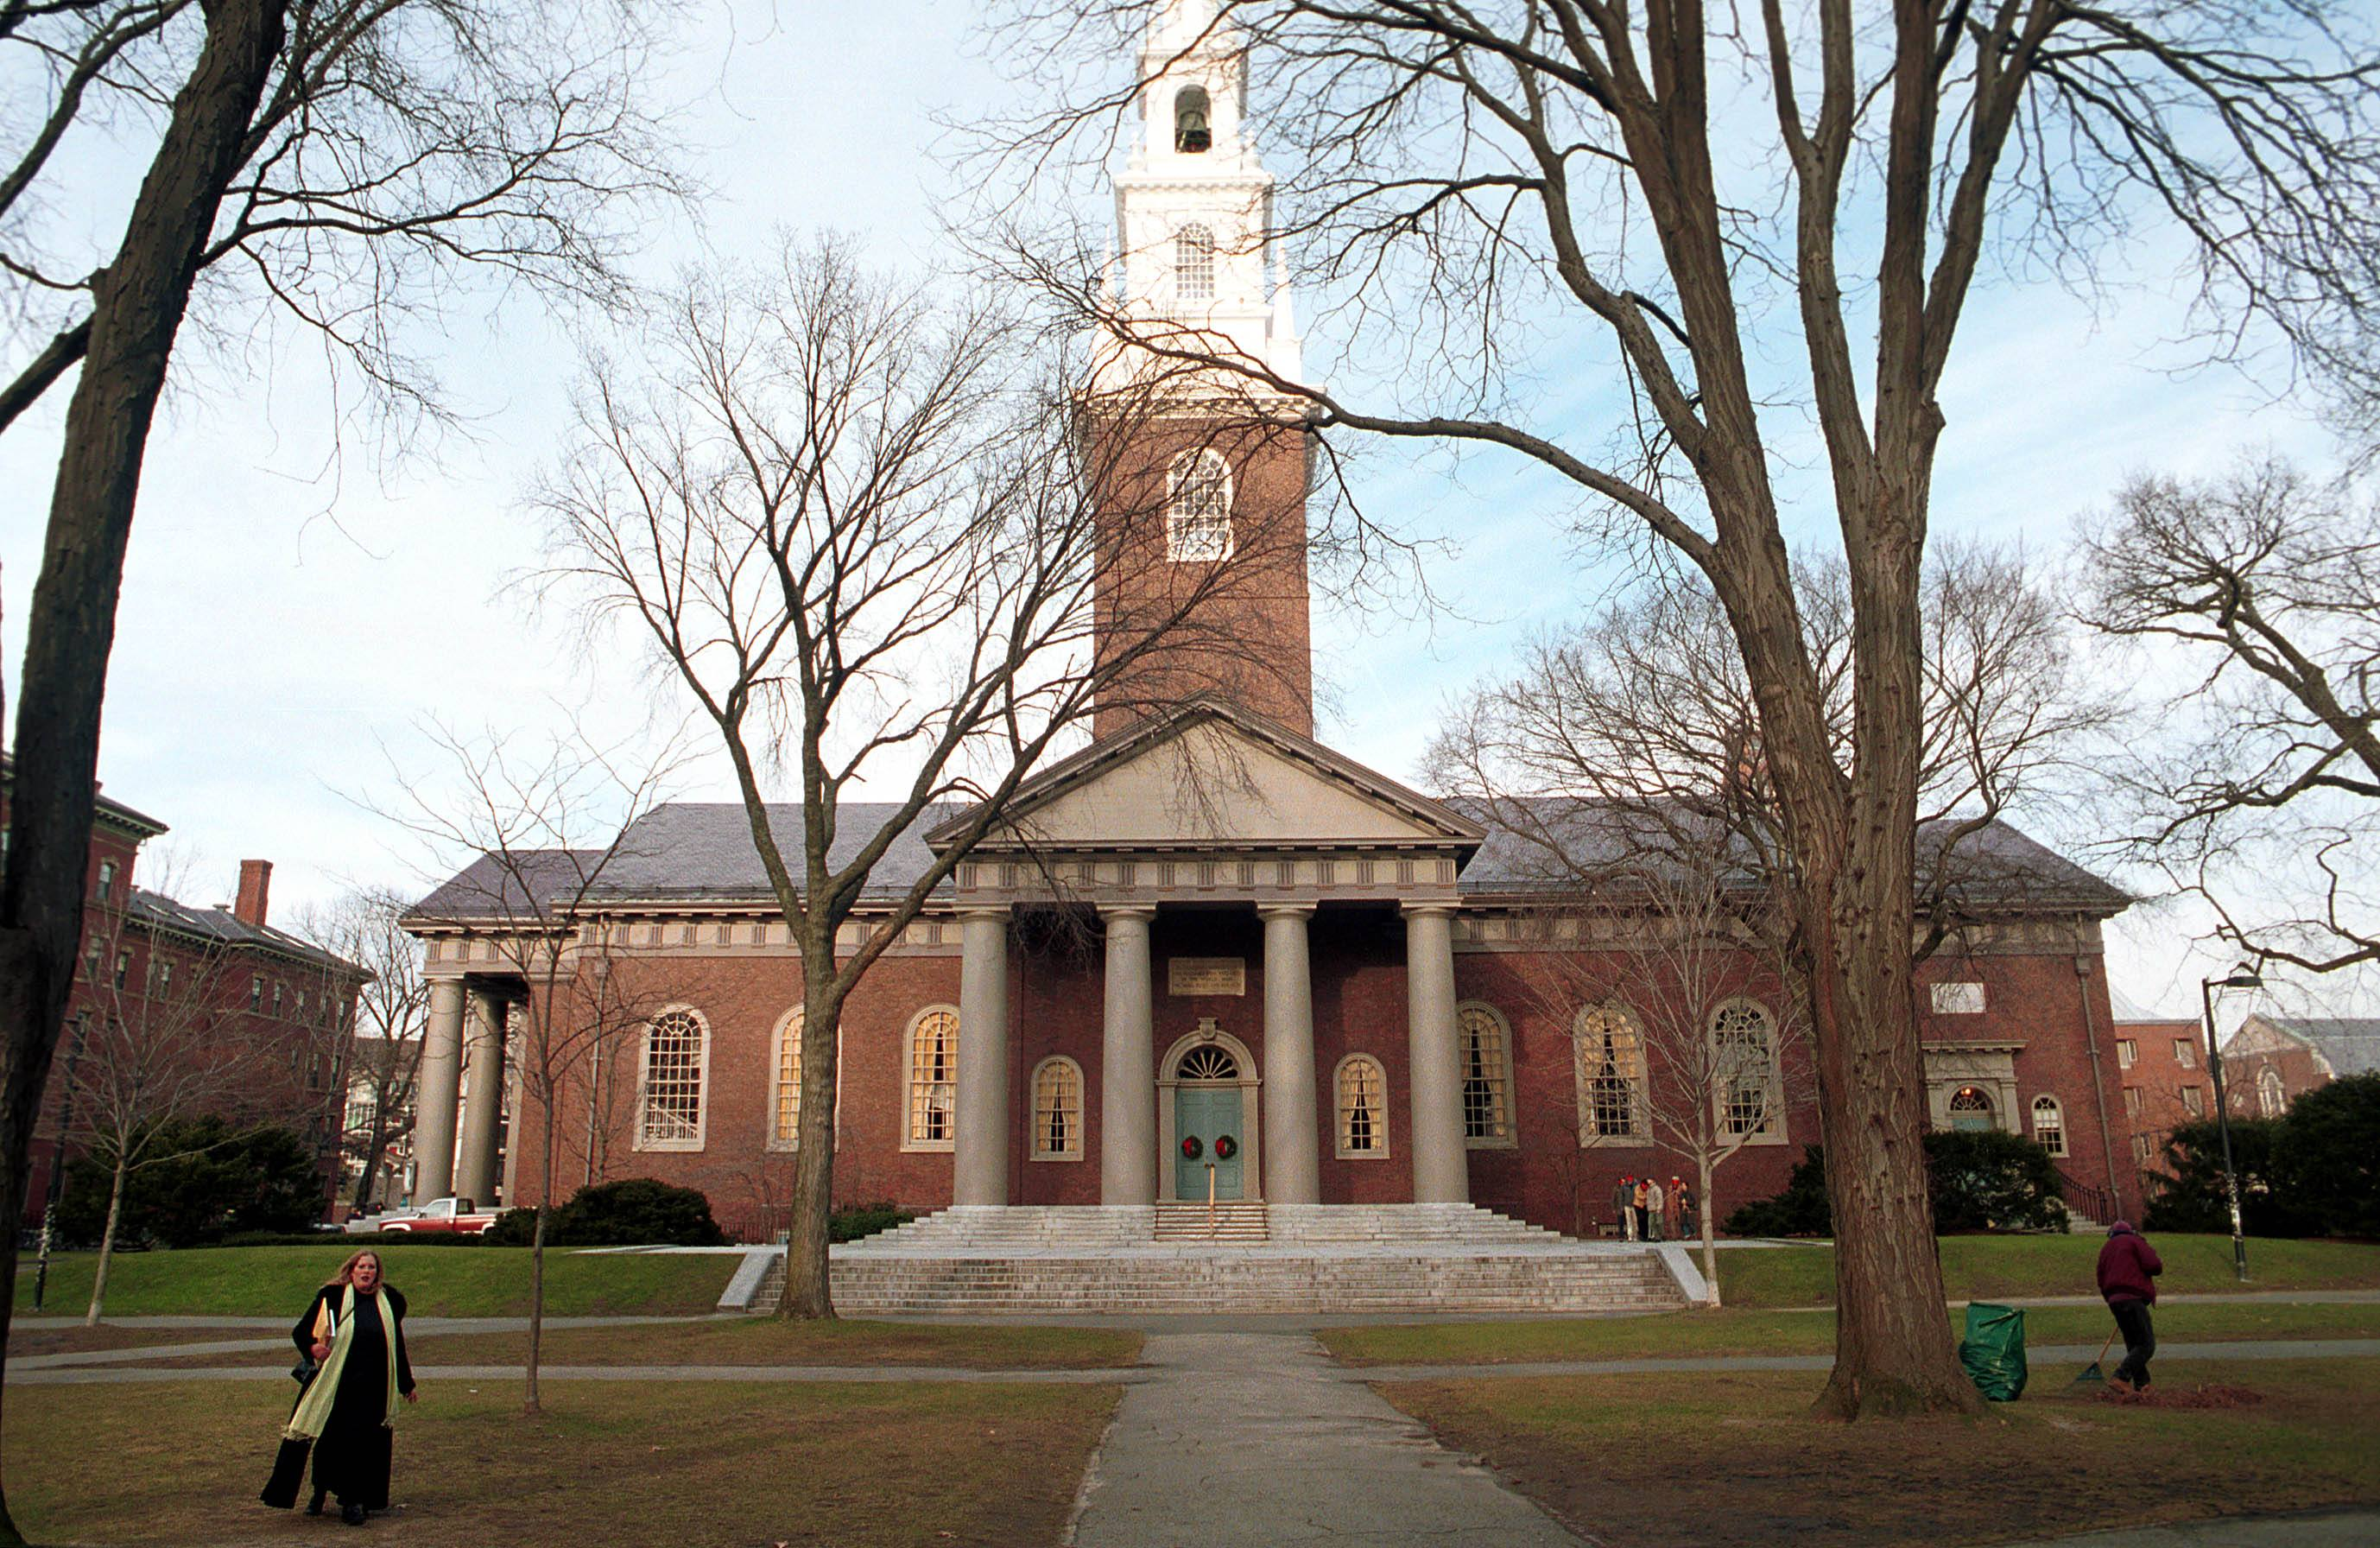 Harvard University's main campus